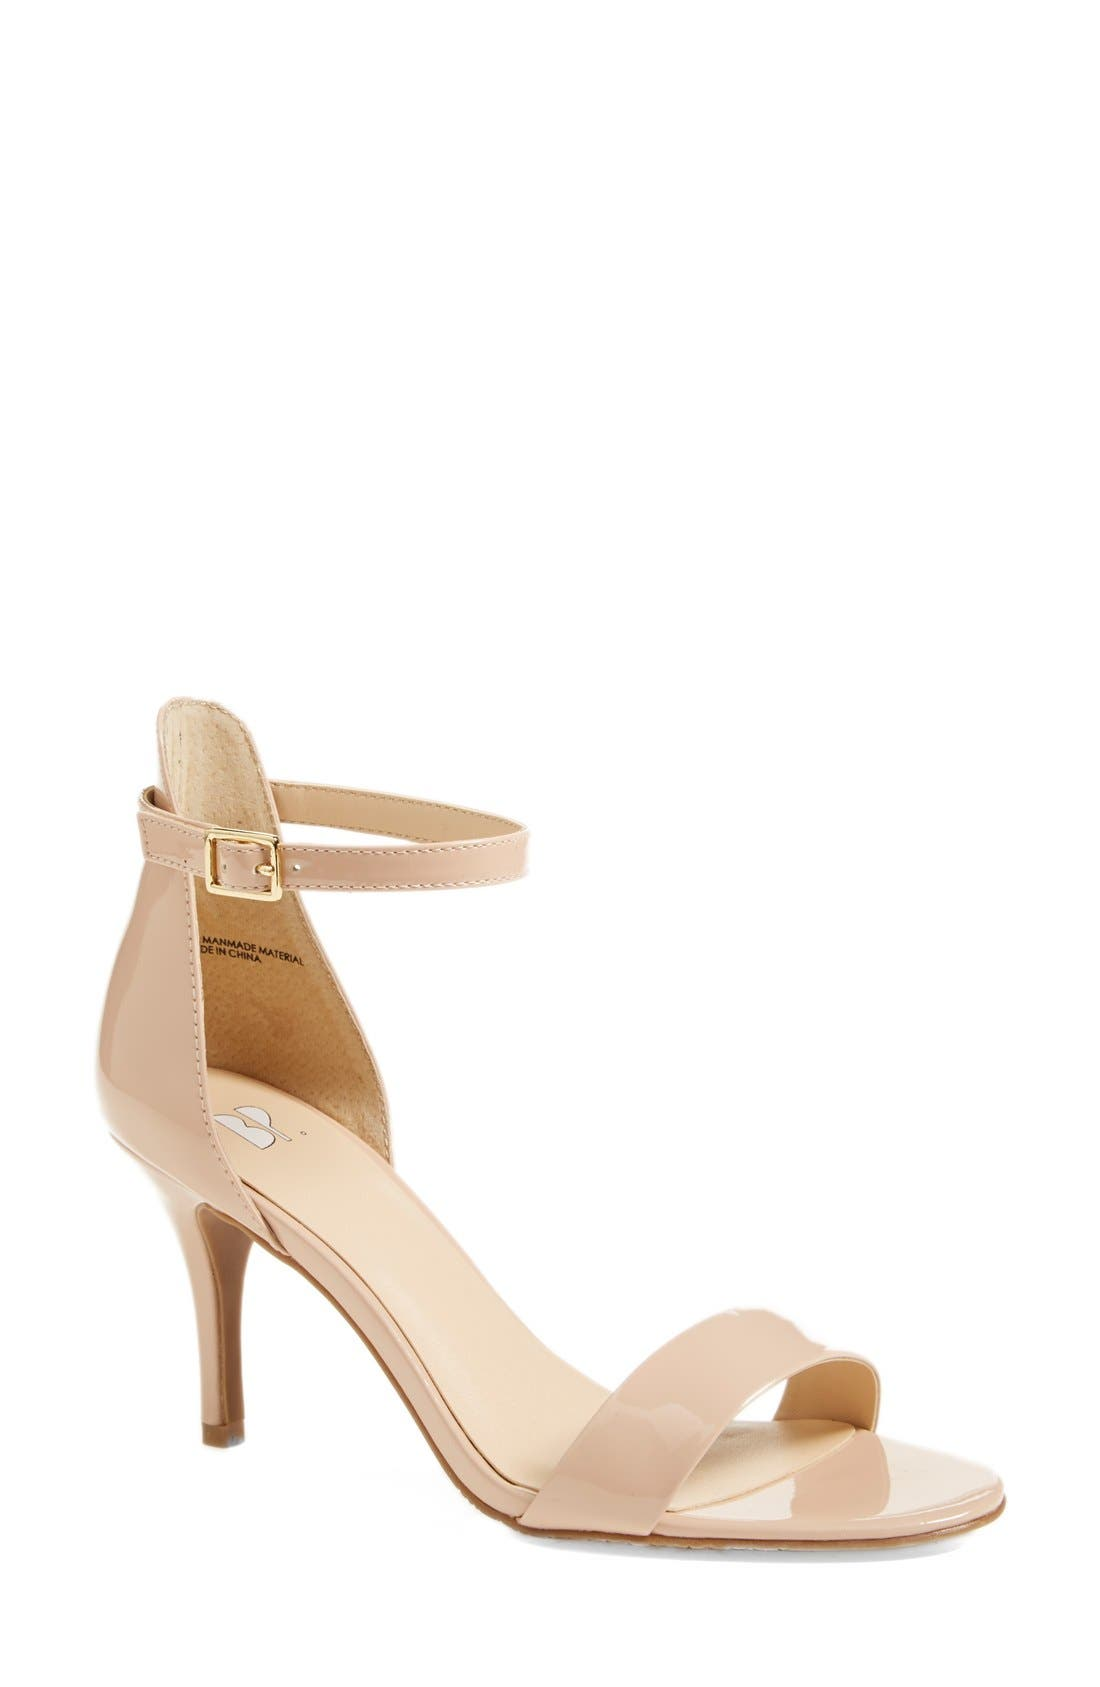 'Luminate' Open Toe Dress Sandal,                             Main thumbnail 38, color,